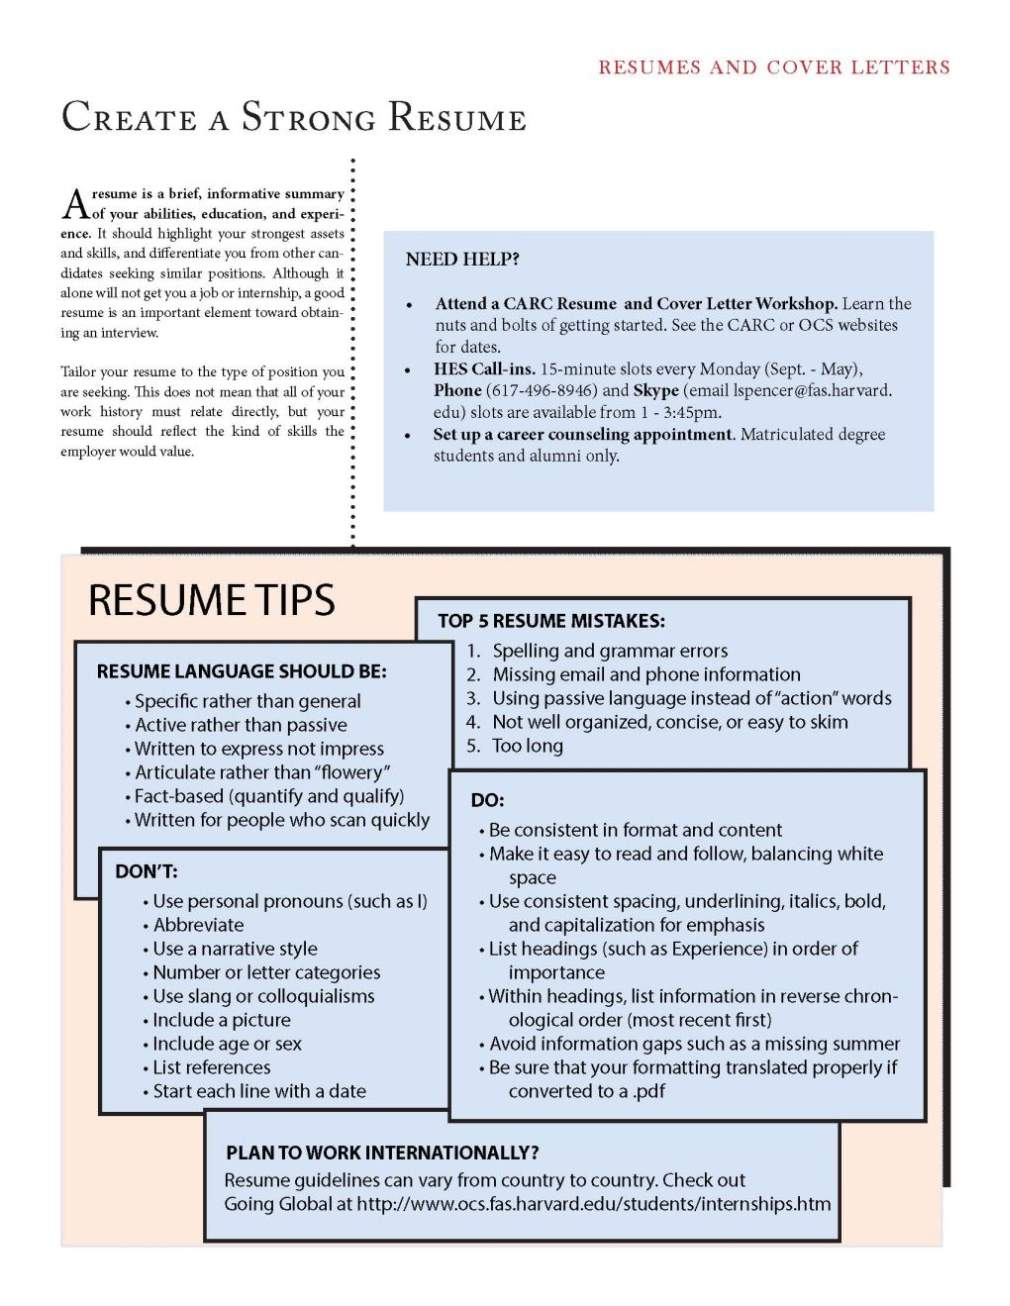 harvard mba resume book 2017 2018 student forum